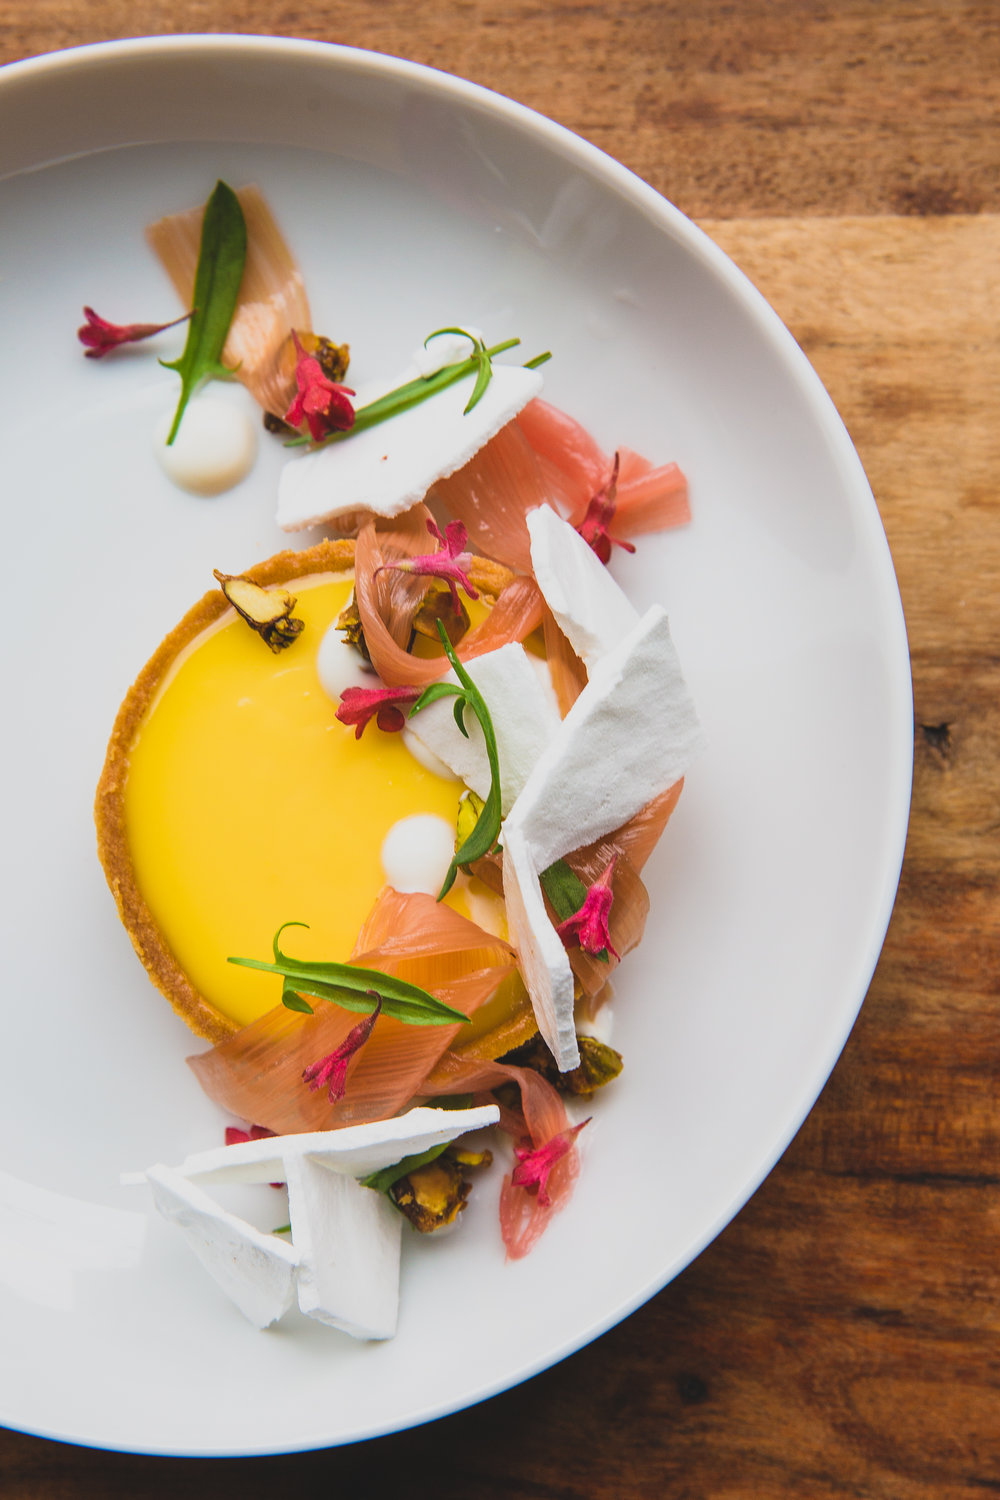 Pistachio lemon tart with rhubarb, honey creme fraiche, meringue shards // Photo credit: When They Find Us